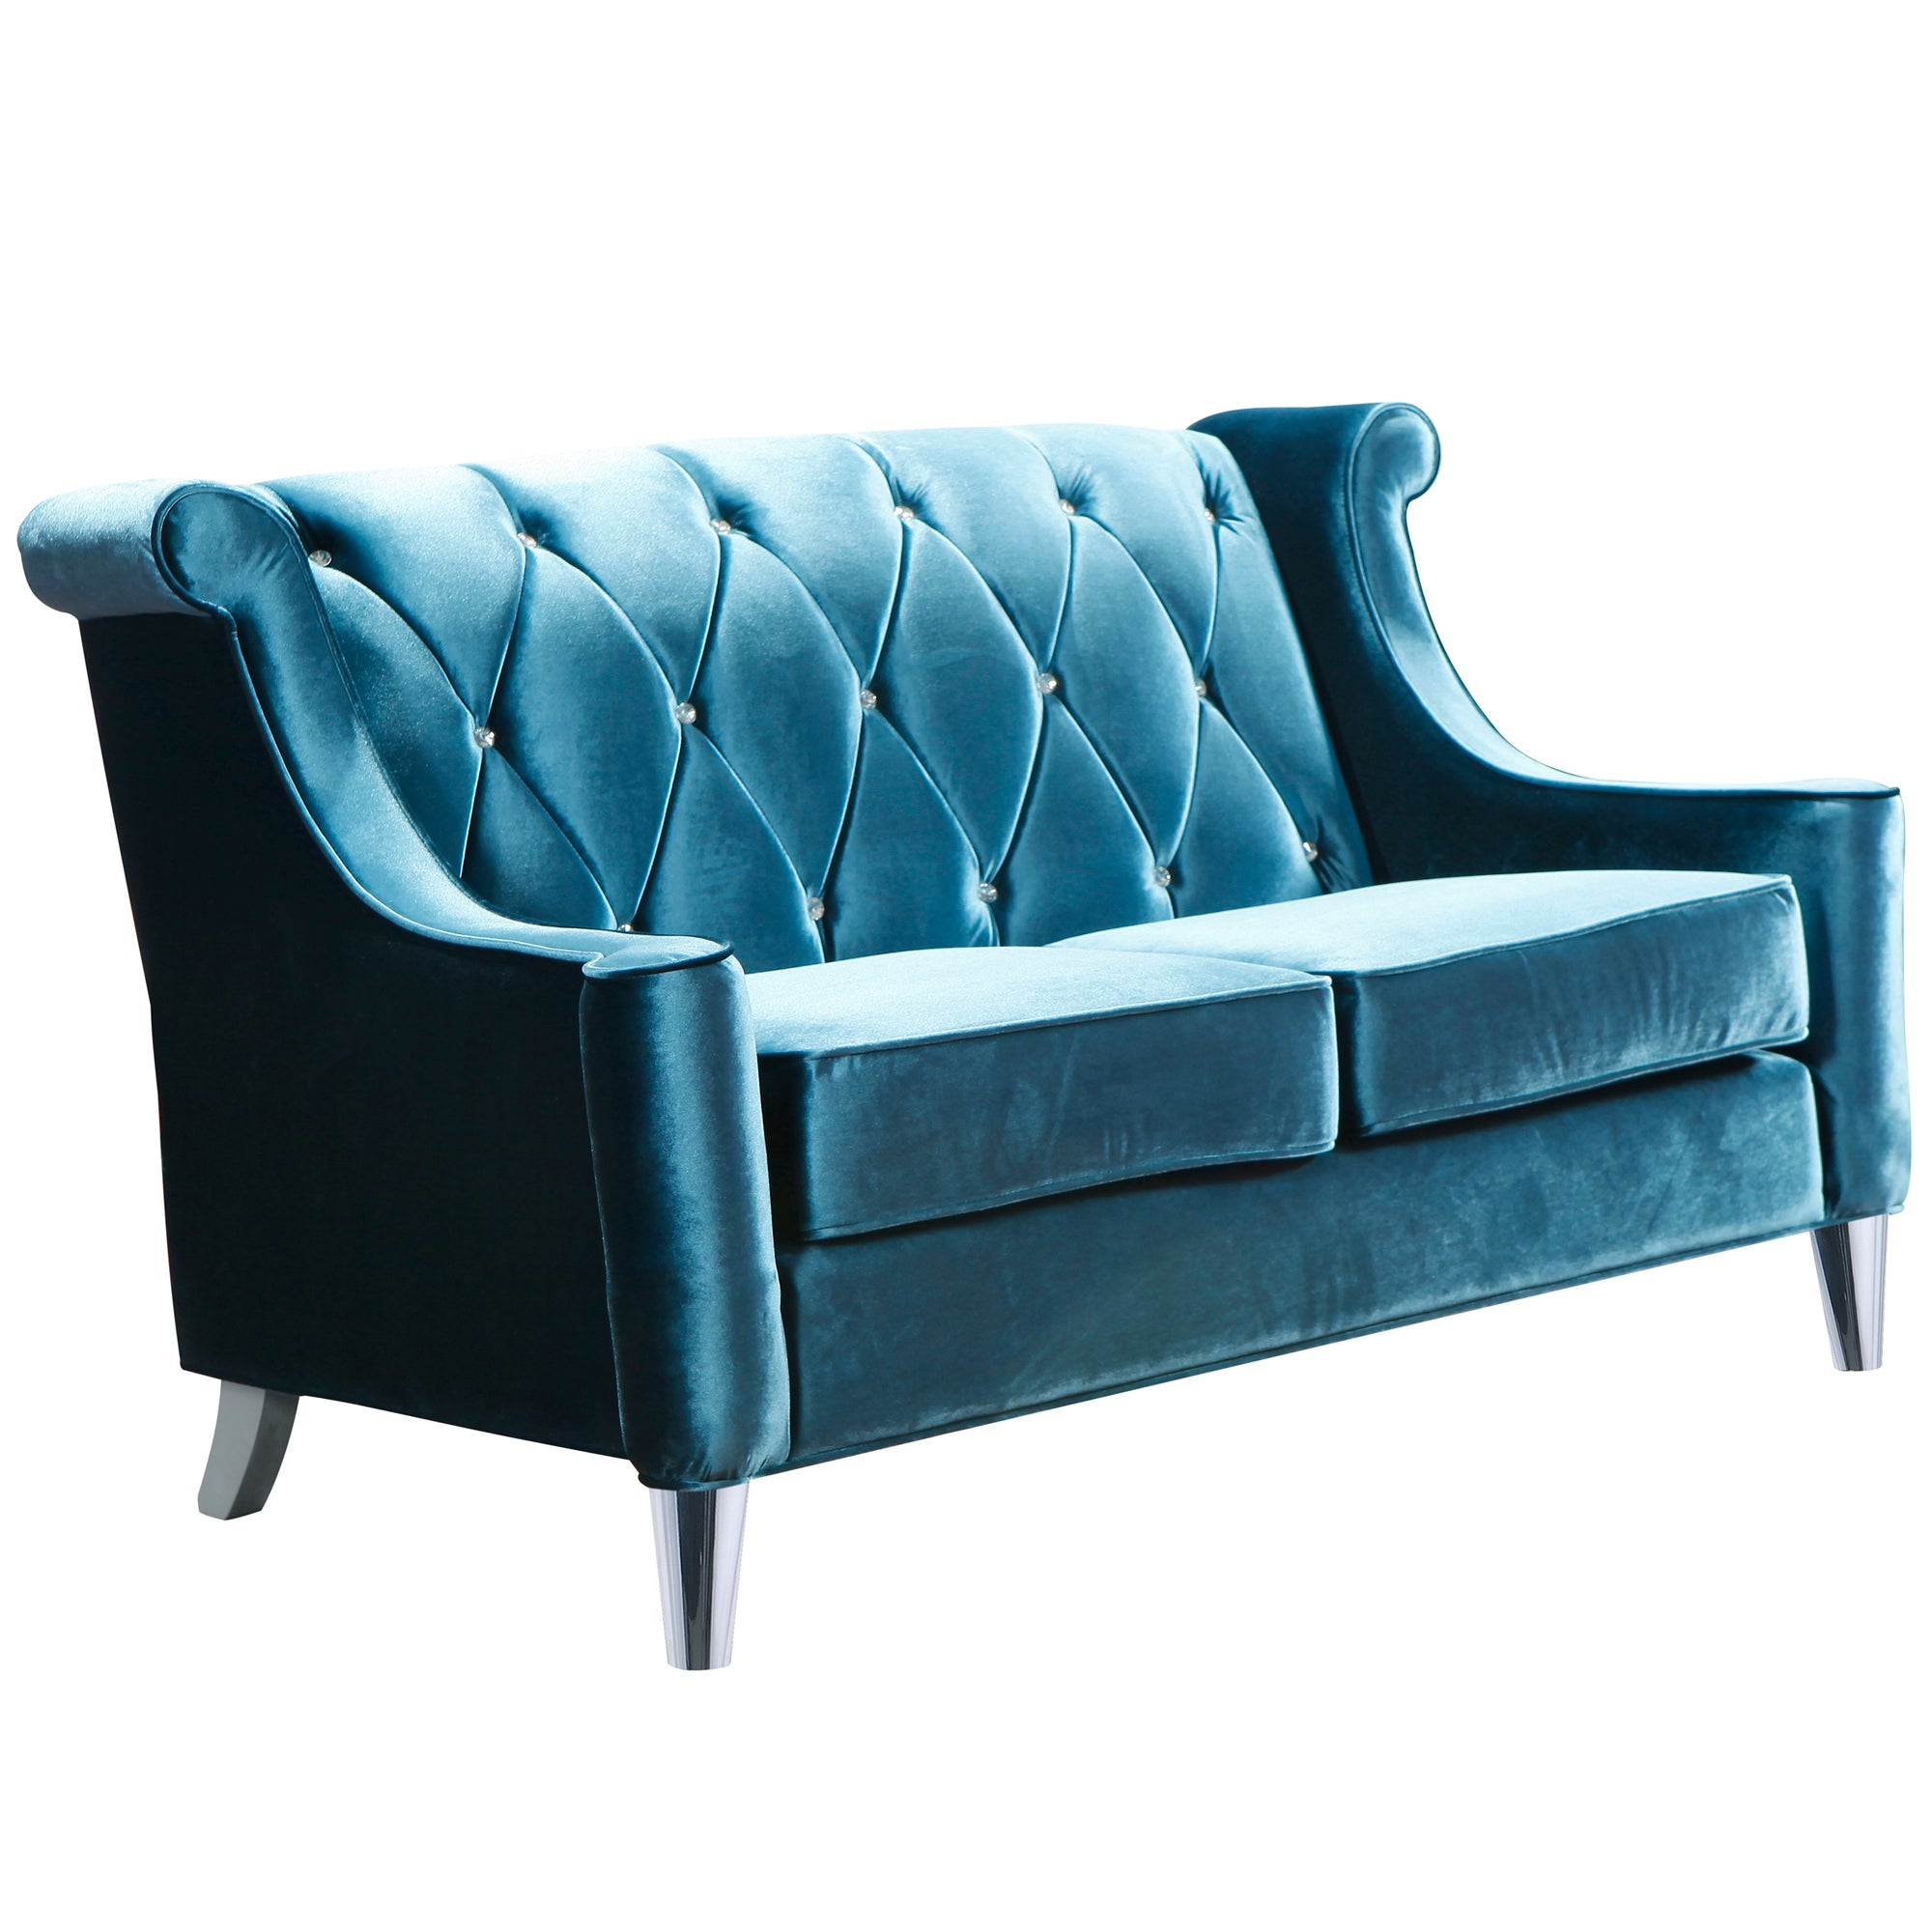 Loveseat Blue Velvet Crystal Buttons Barrister